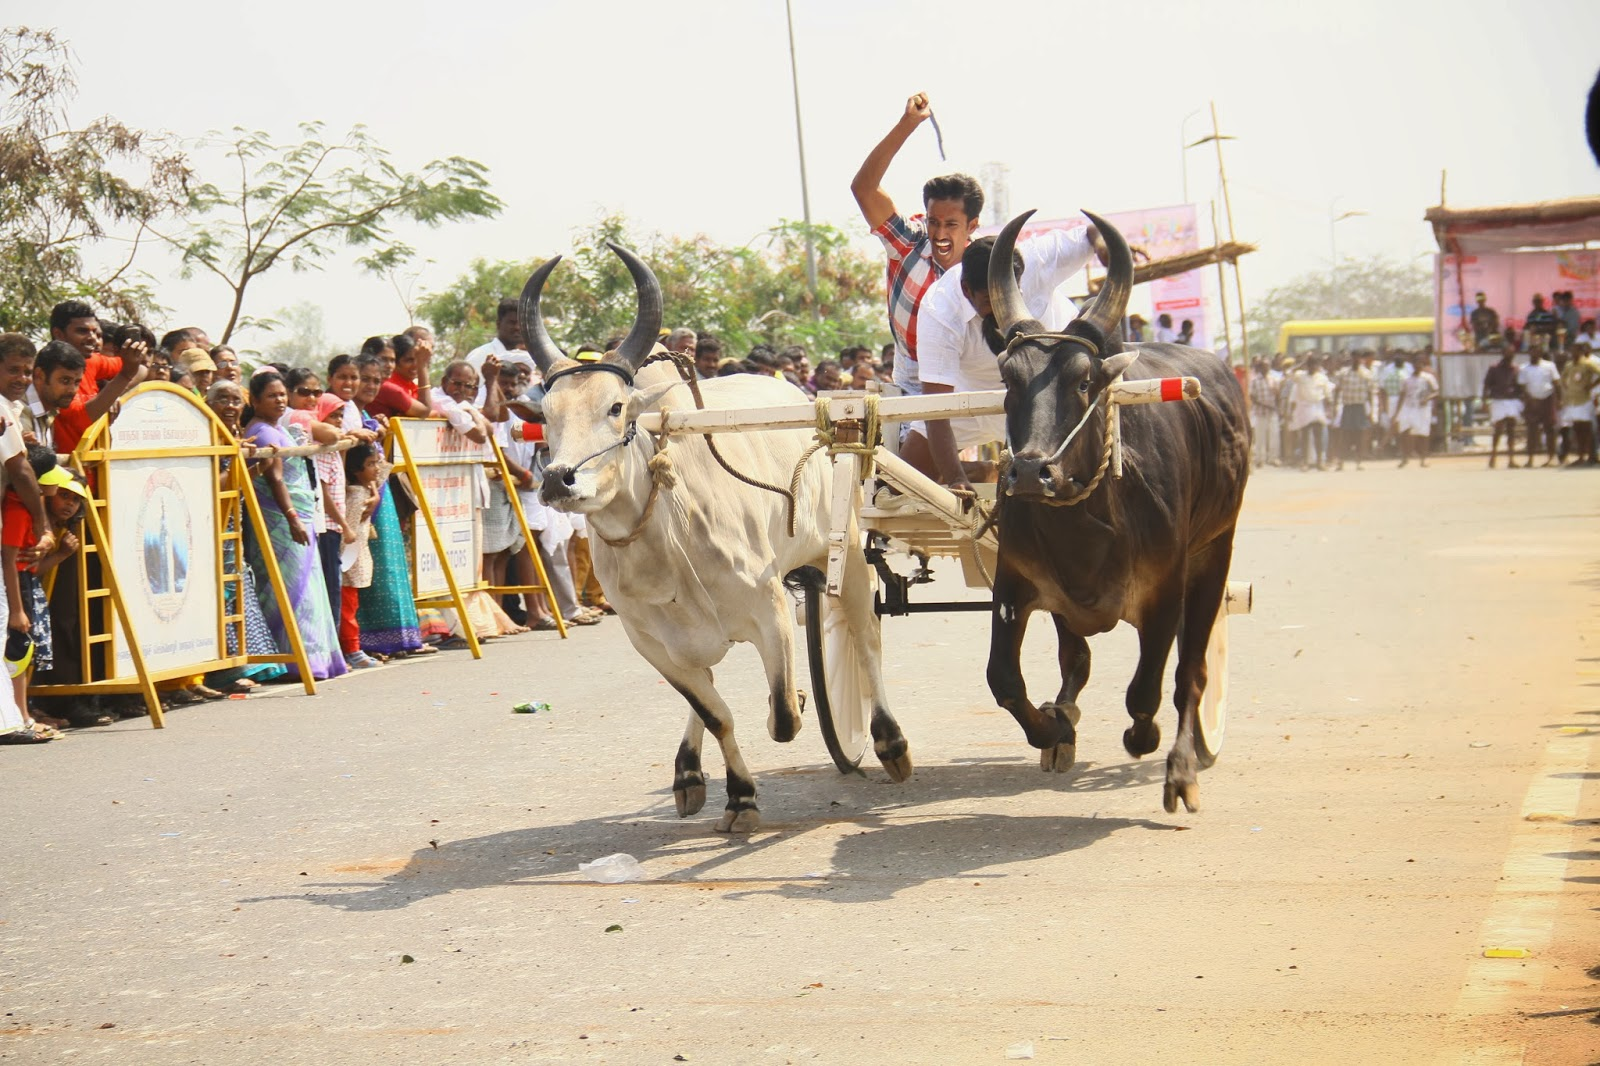 Bullock cart essay writer